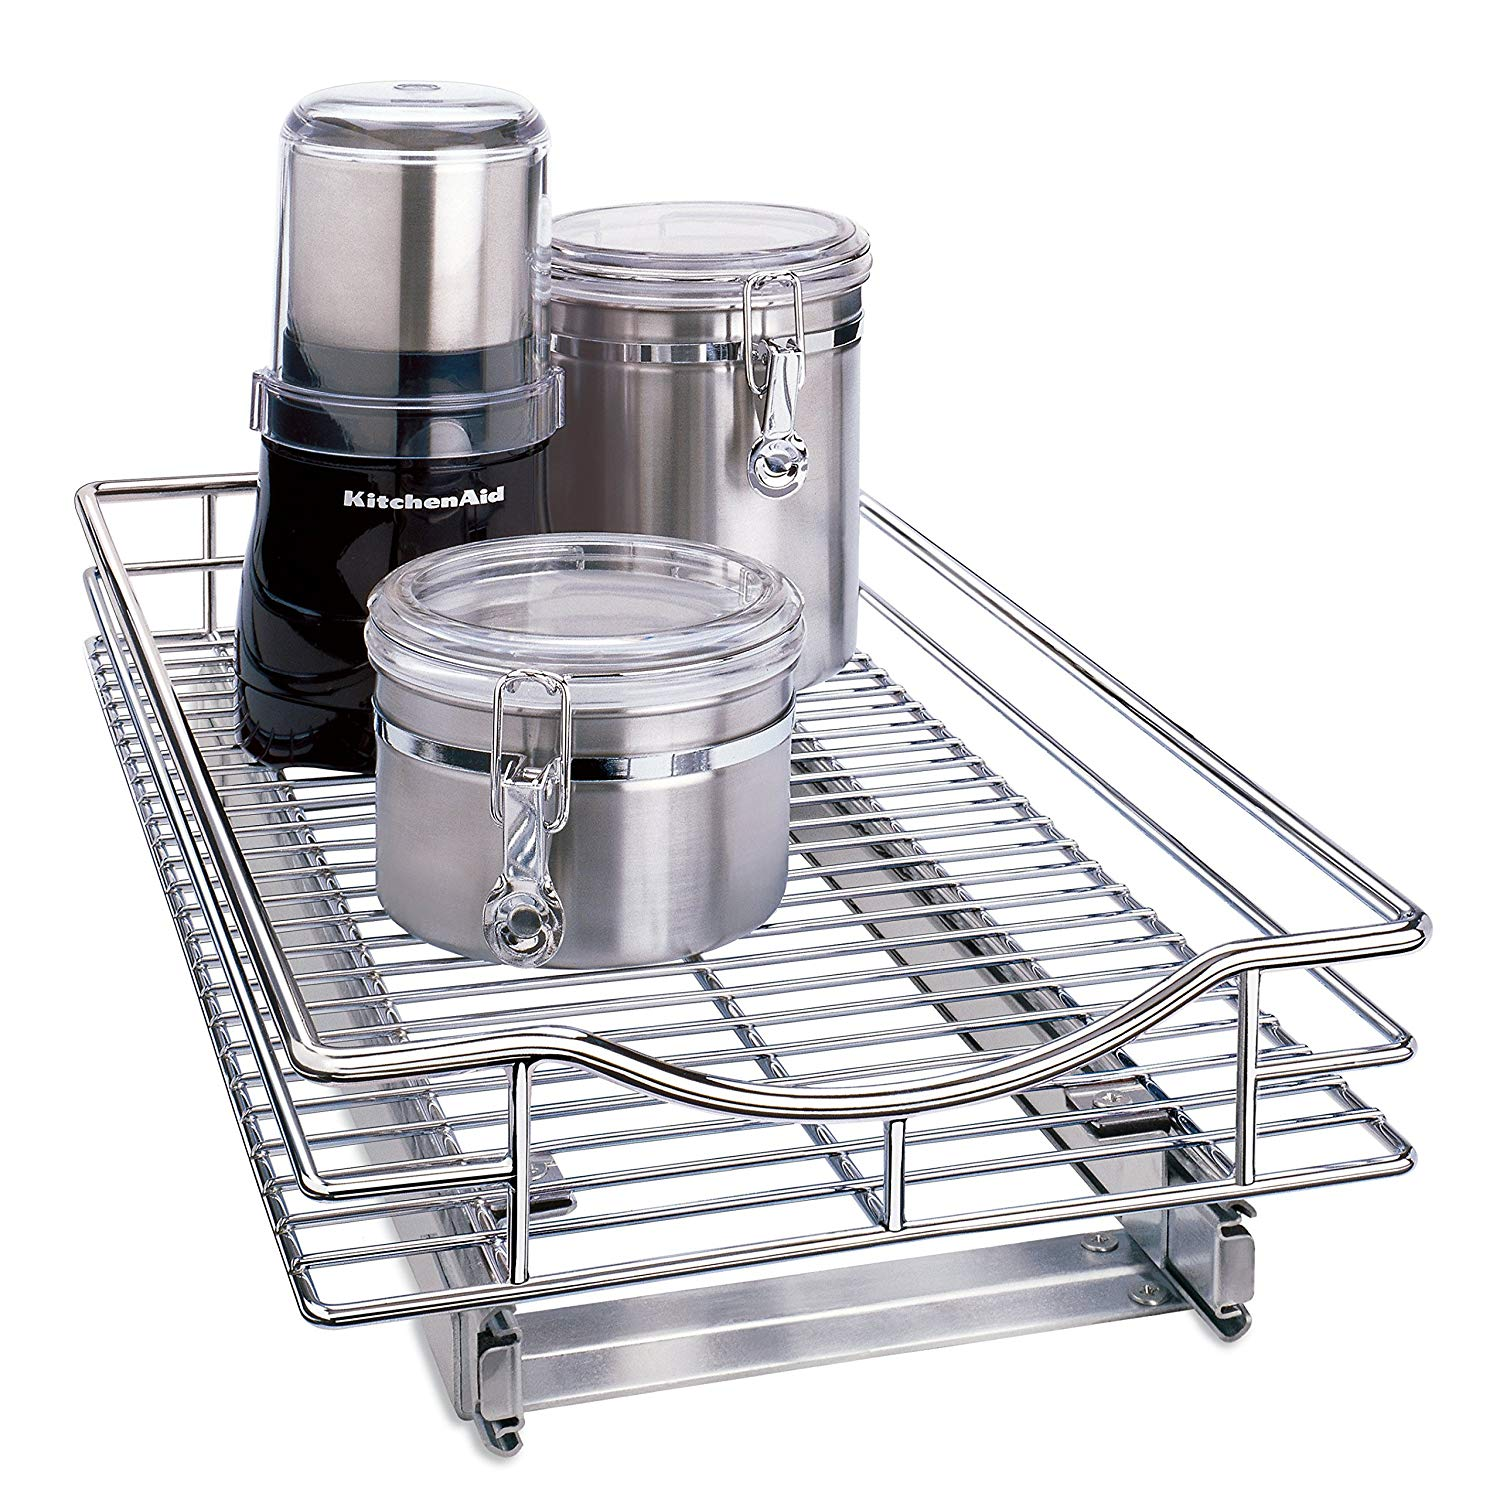 11 Inch x 18 Inch Chrome Slide-Out Cabinet Basket